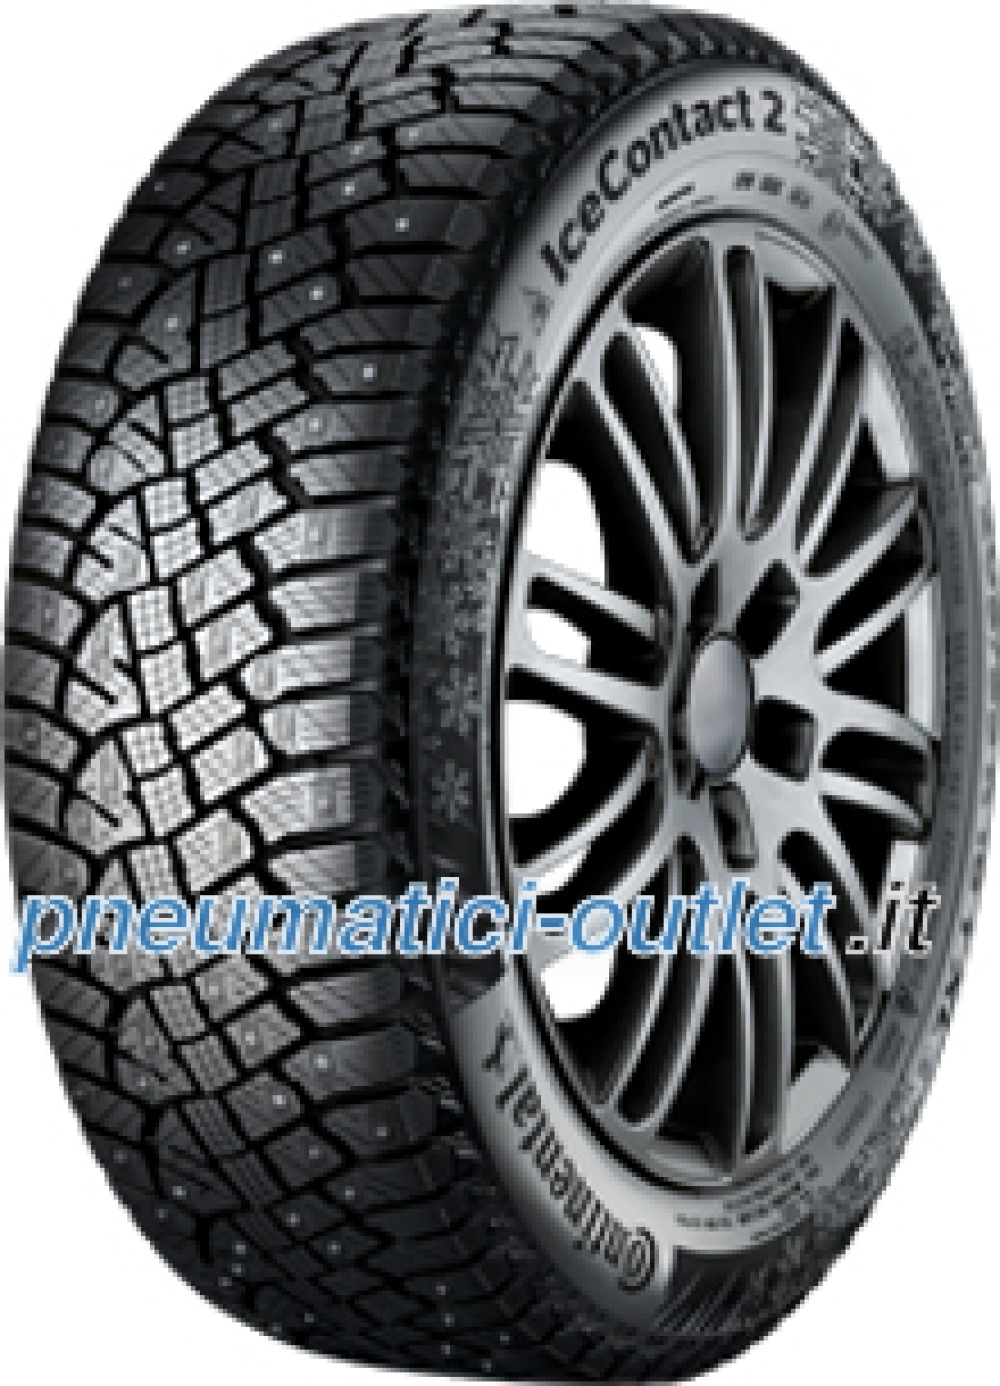 Continental IceContact 2 ( 175/70 R14 88T XL pneumatico chiodato )